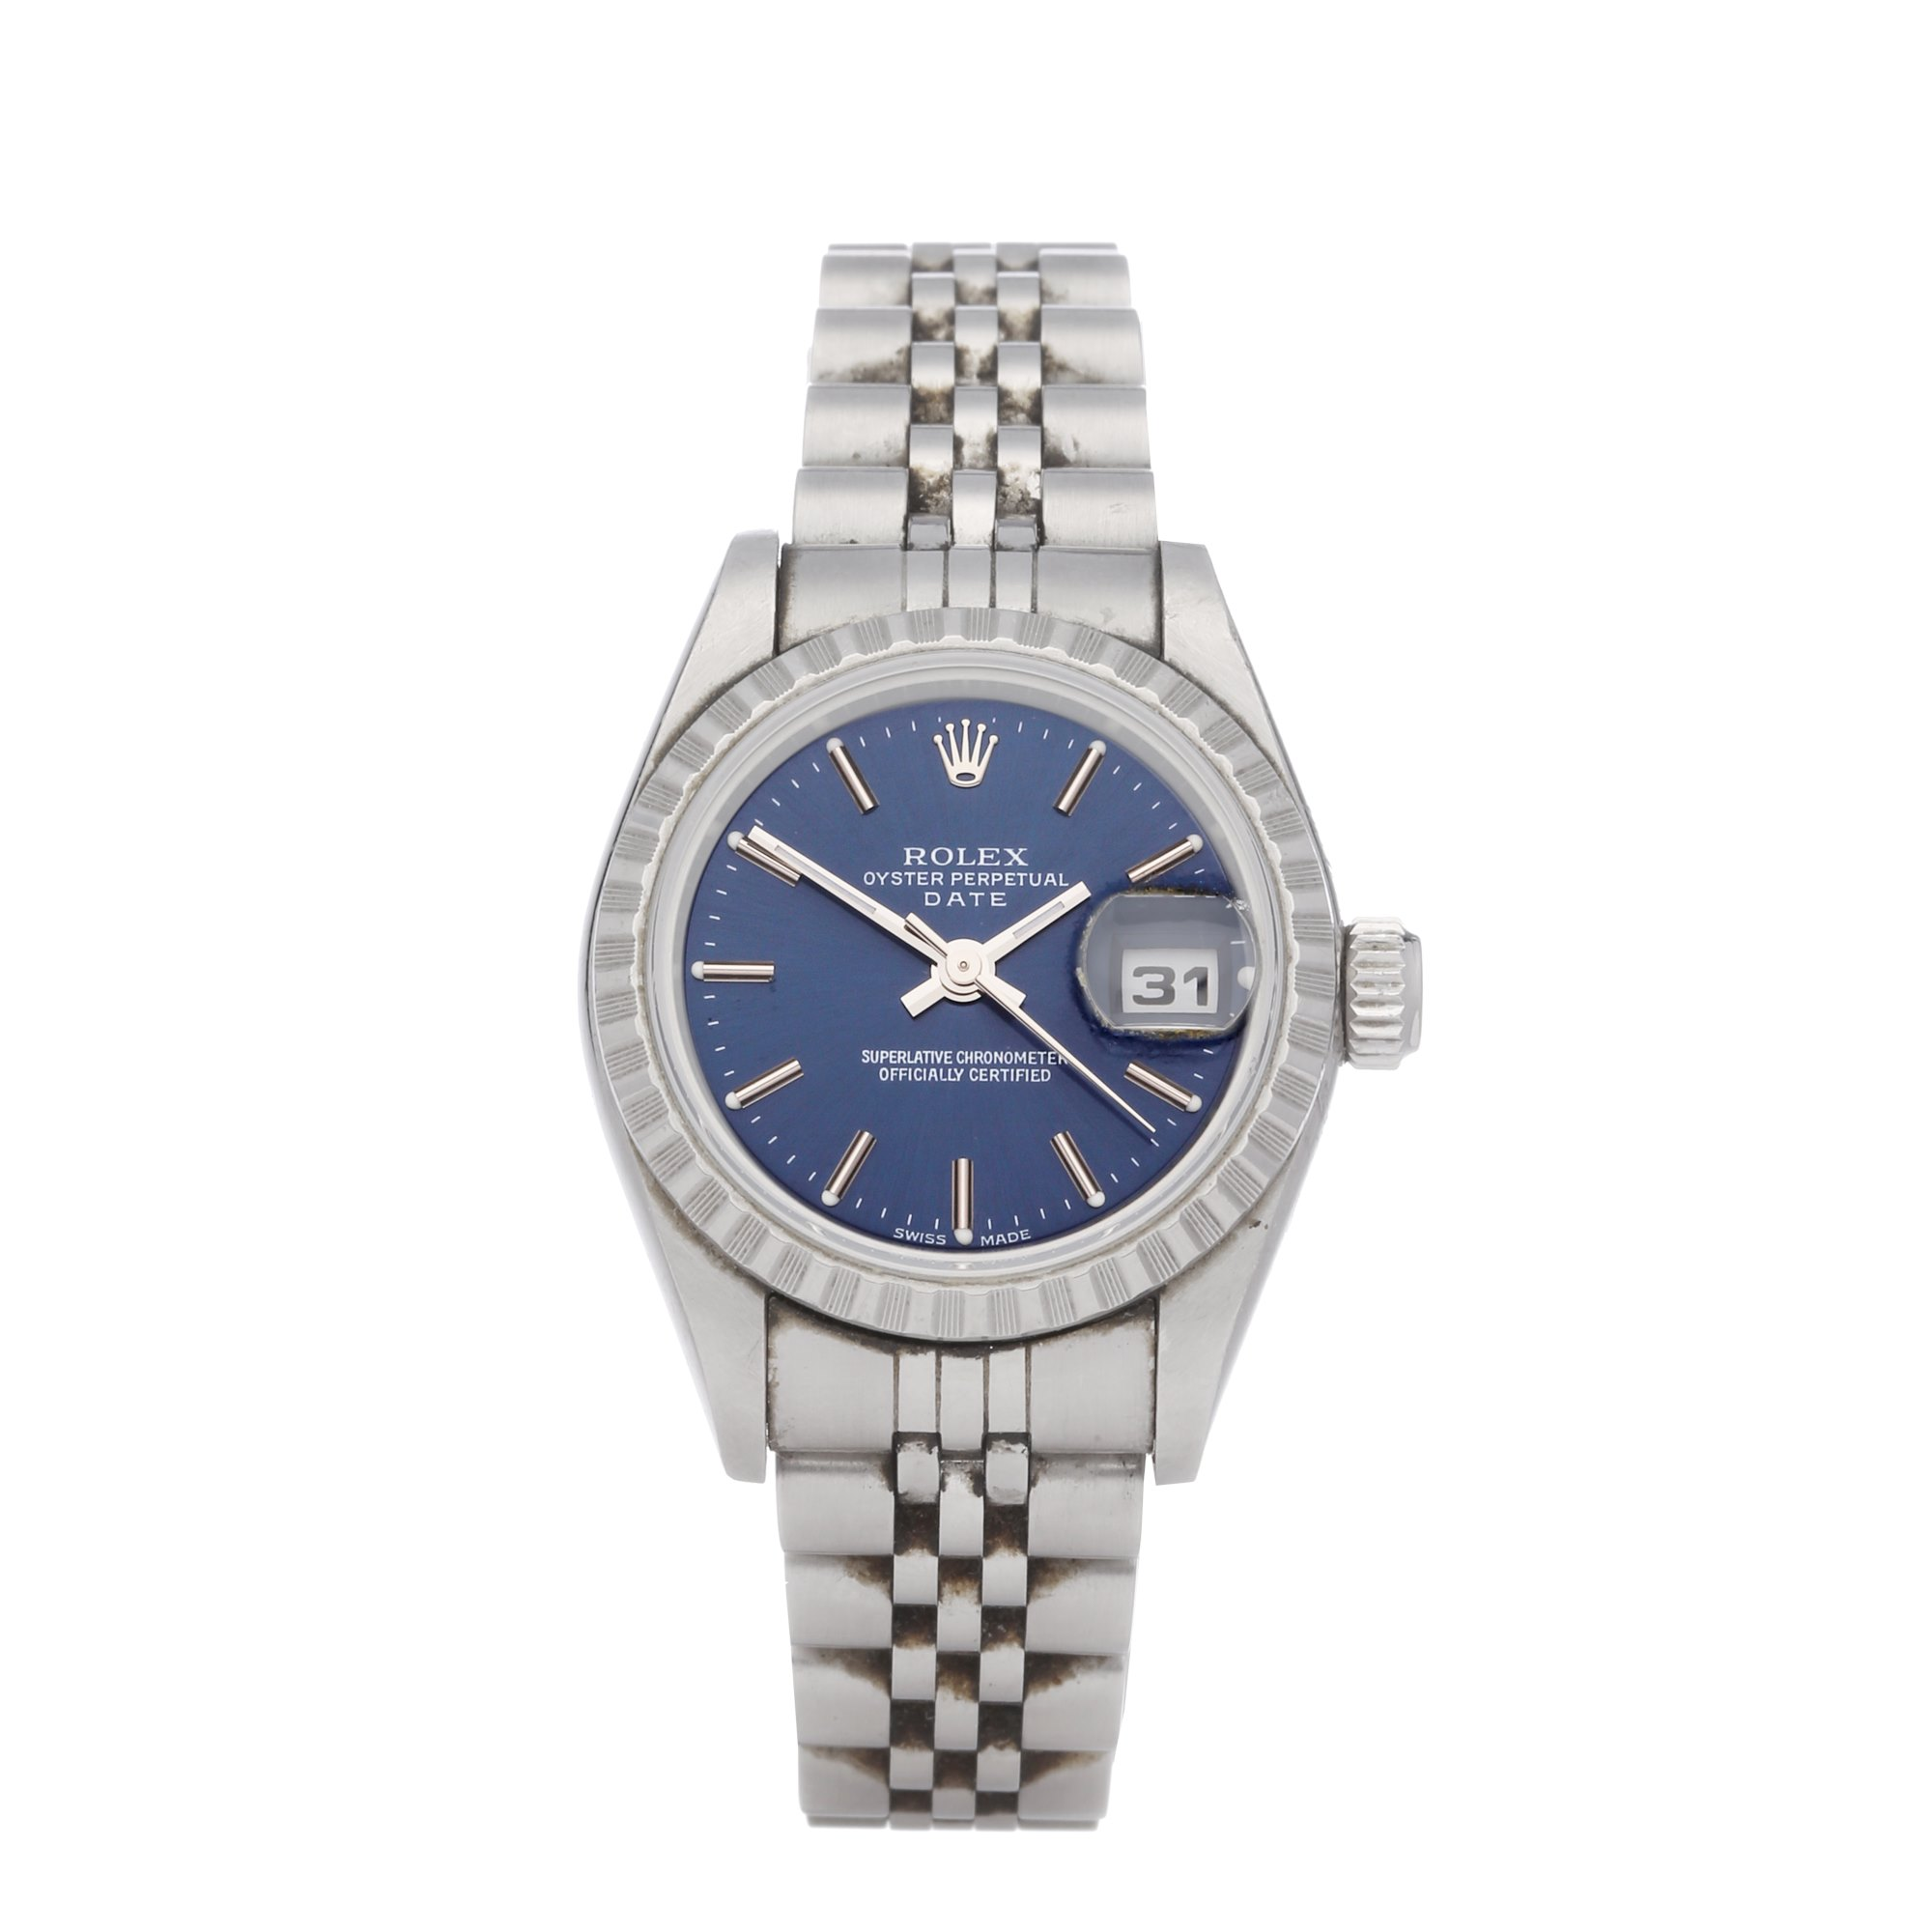 Rolex Oyster Perpetual Date Stainless Steel 79240